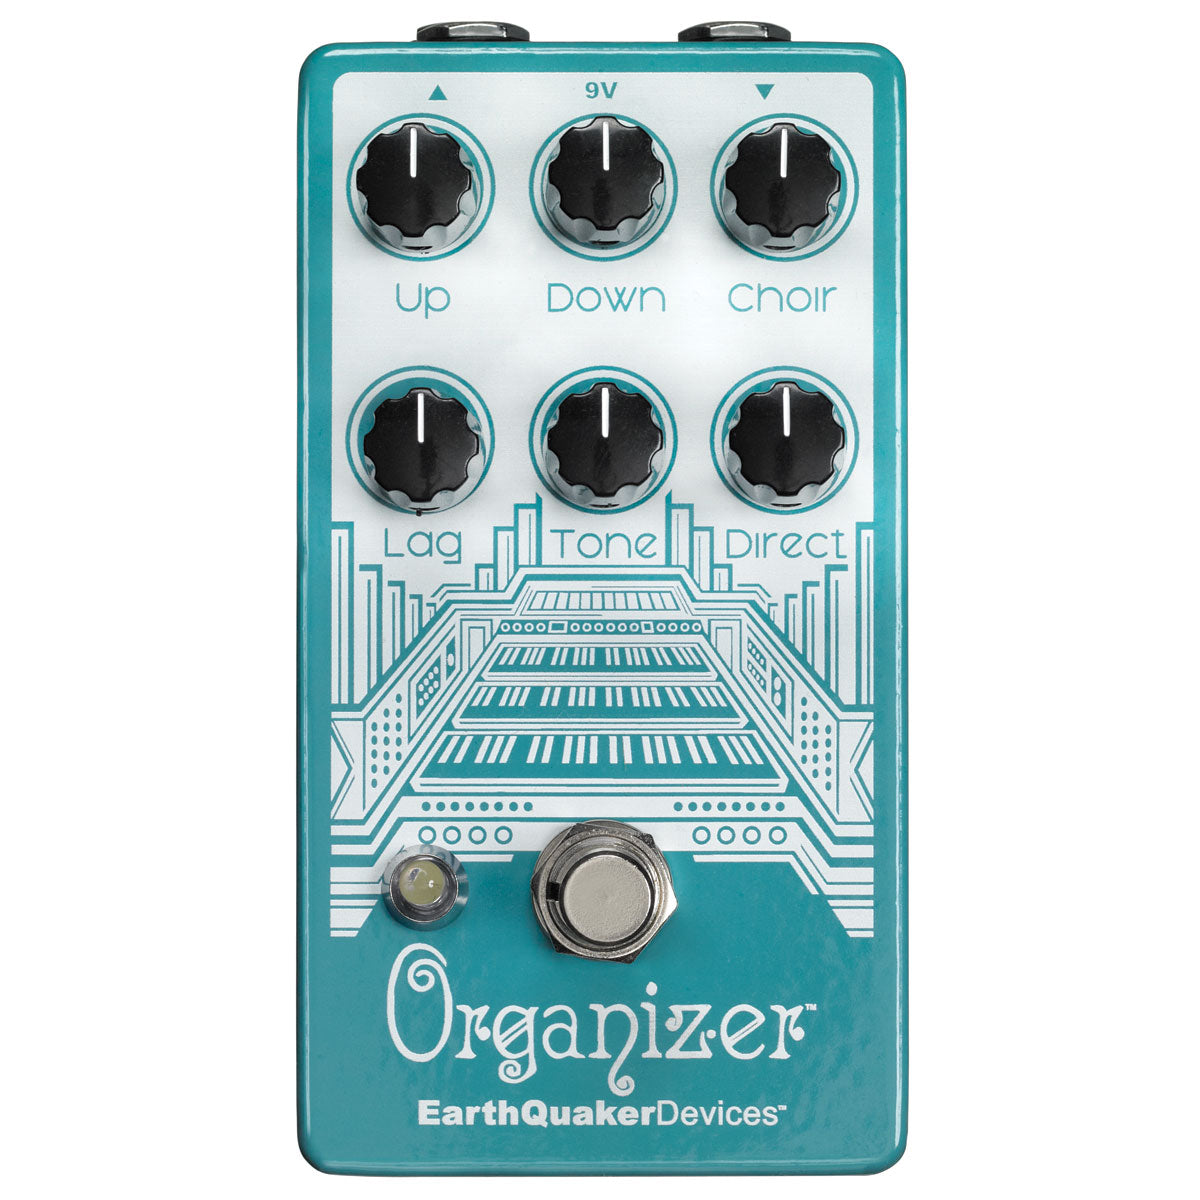 Earthquaker Devices Organizer V2 Polyphonic Organ Emulator | Lucky Fret Music Co.